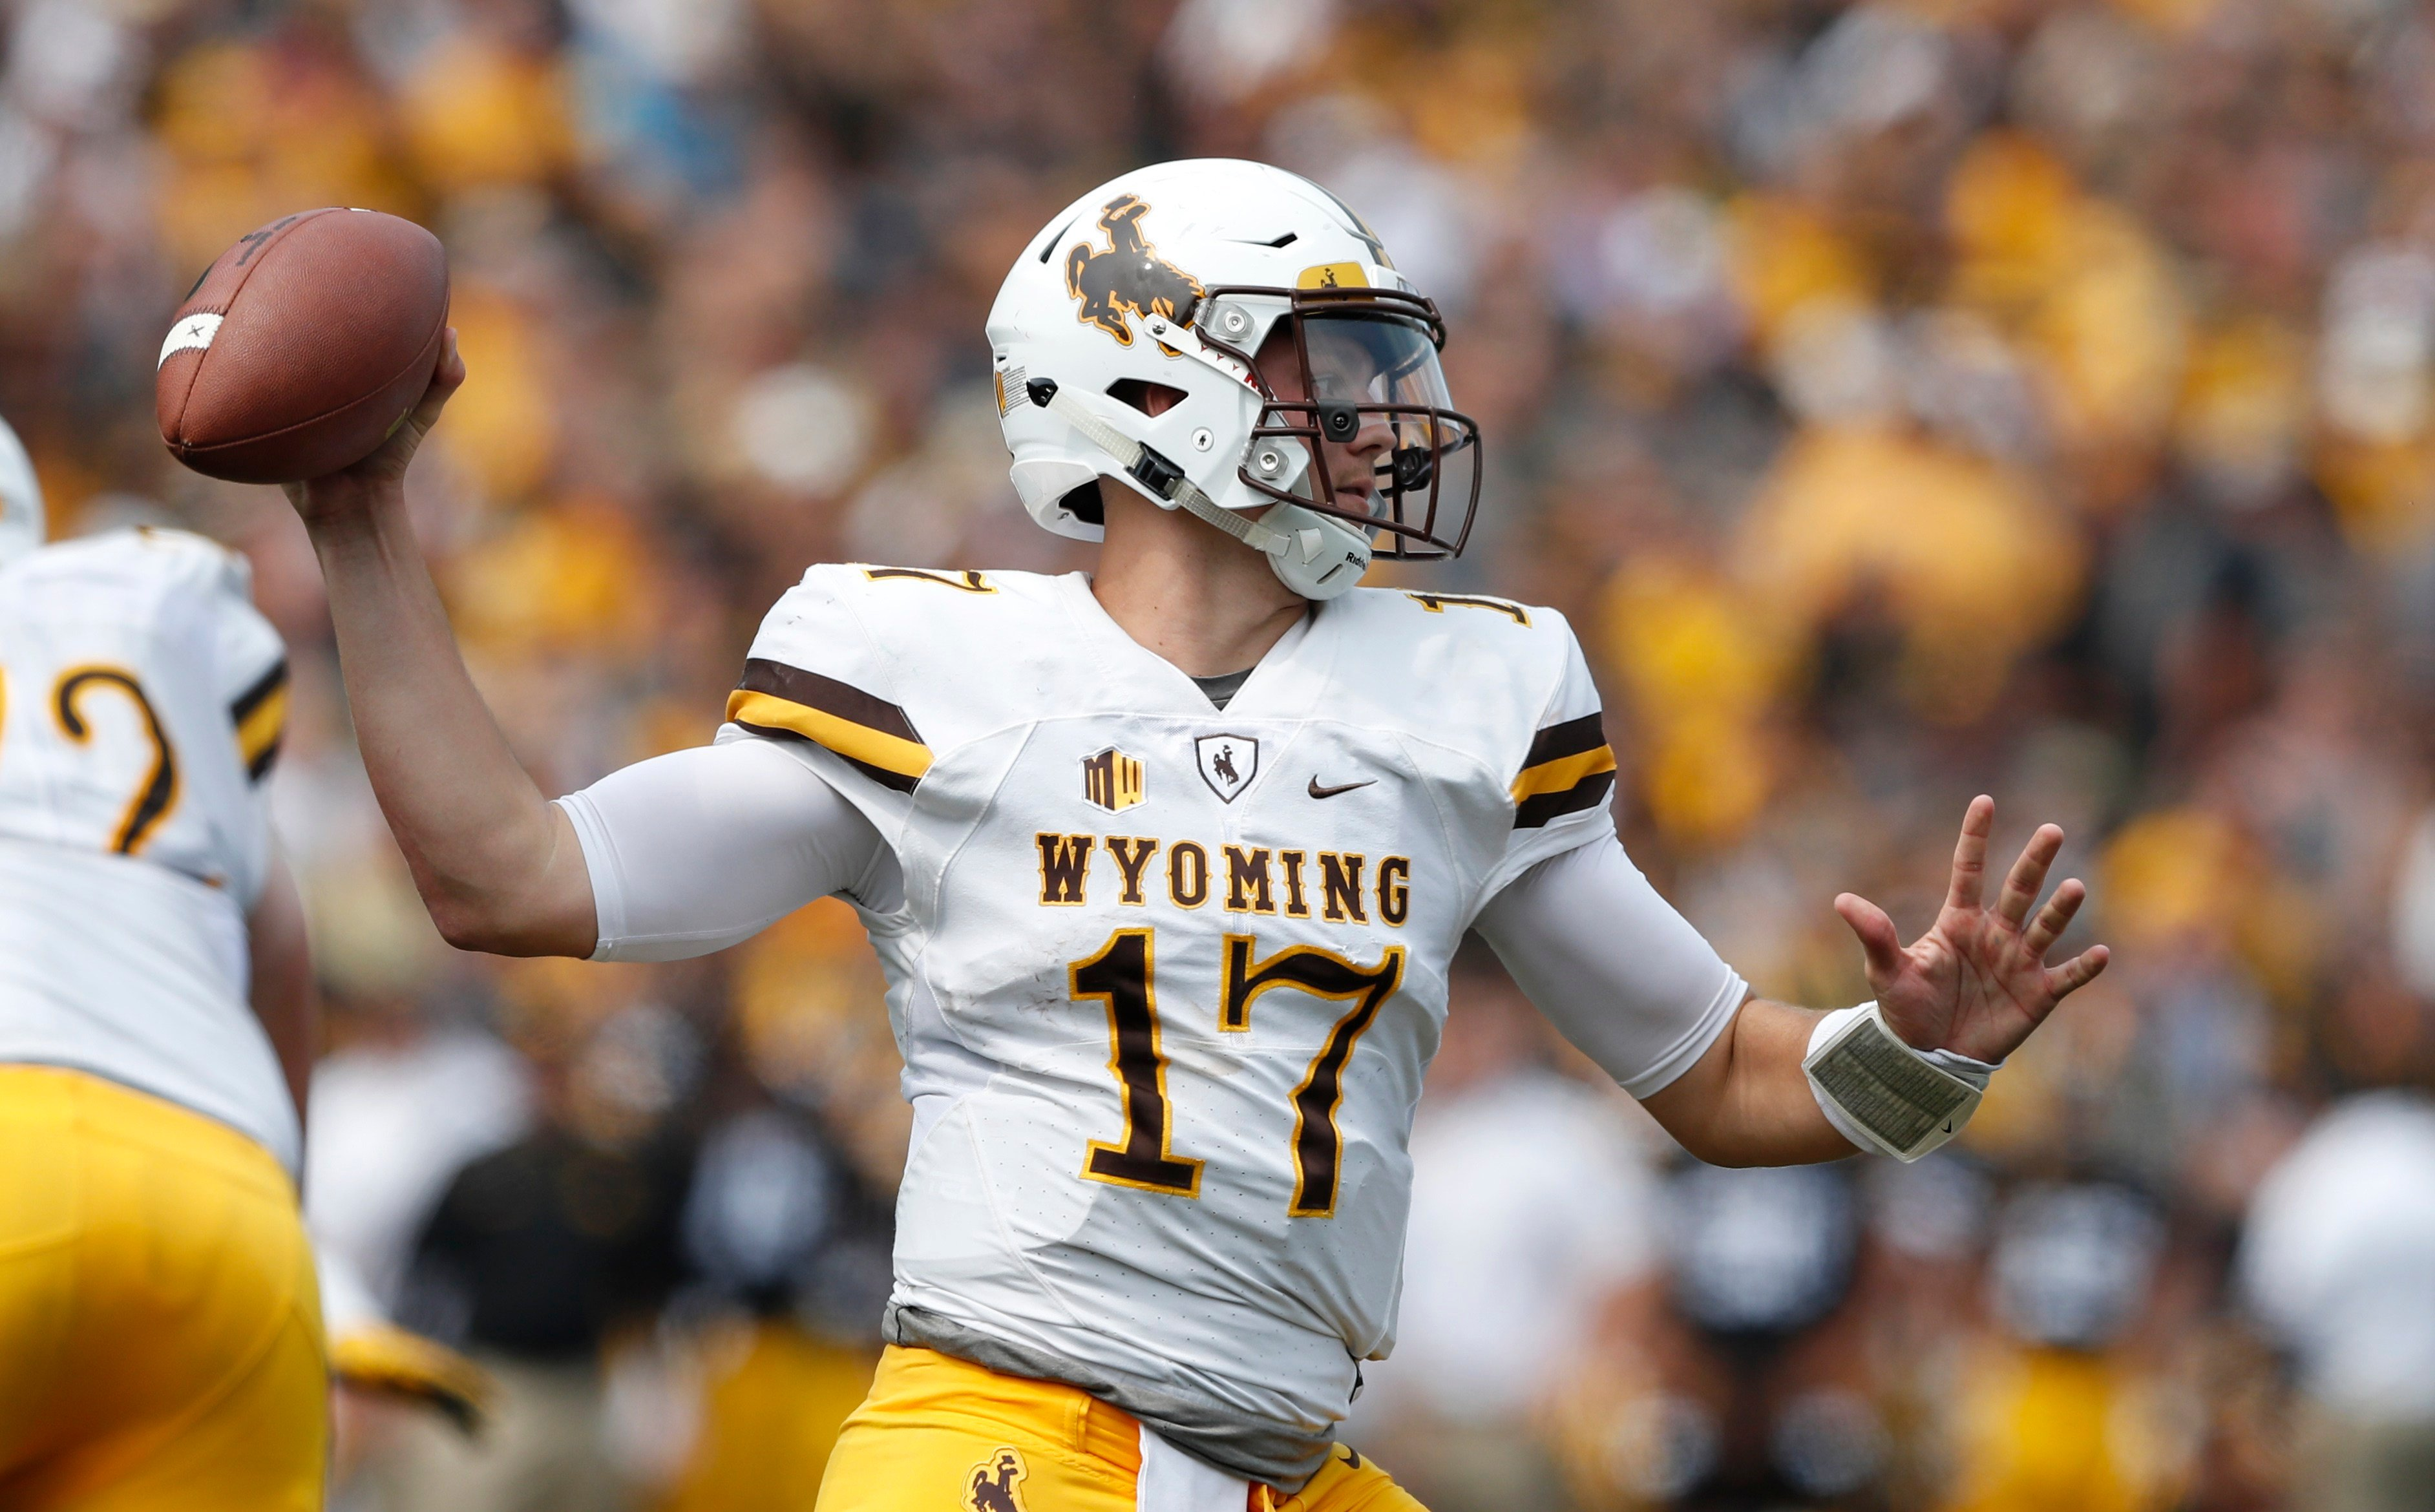 Wyoming quarterback Josh Allen throws a pass during the second half of an NCAA college football game against Iowa, Saturday, Sept. 2, 2017, in Iowa City, Iowa. Iowa won 24-3.